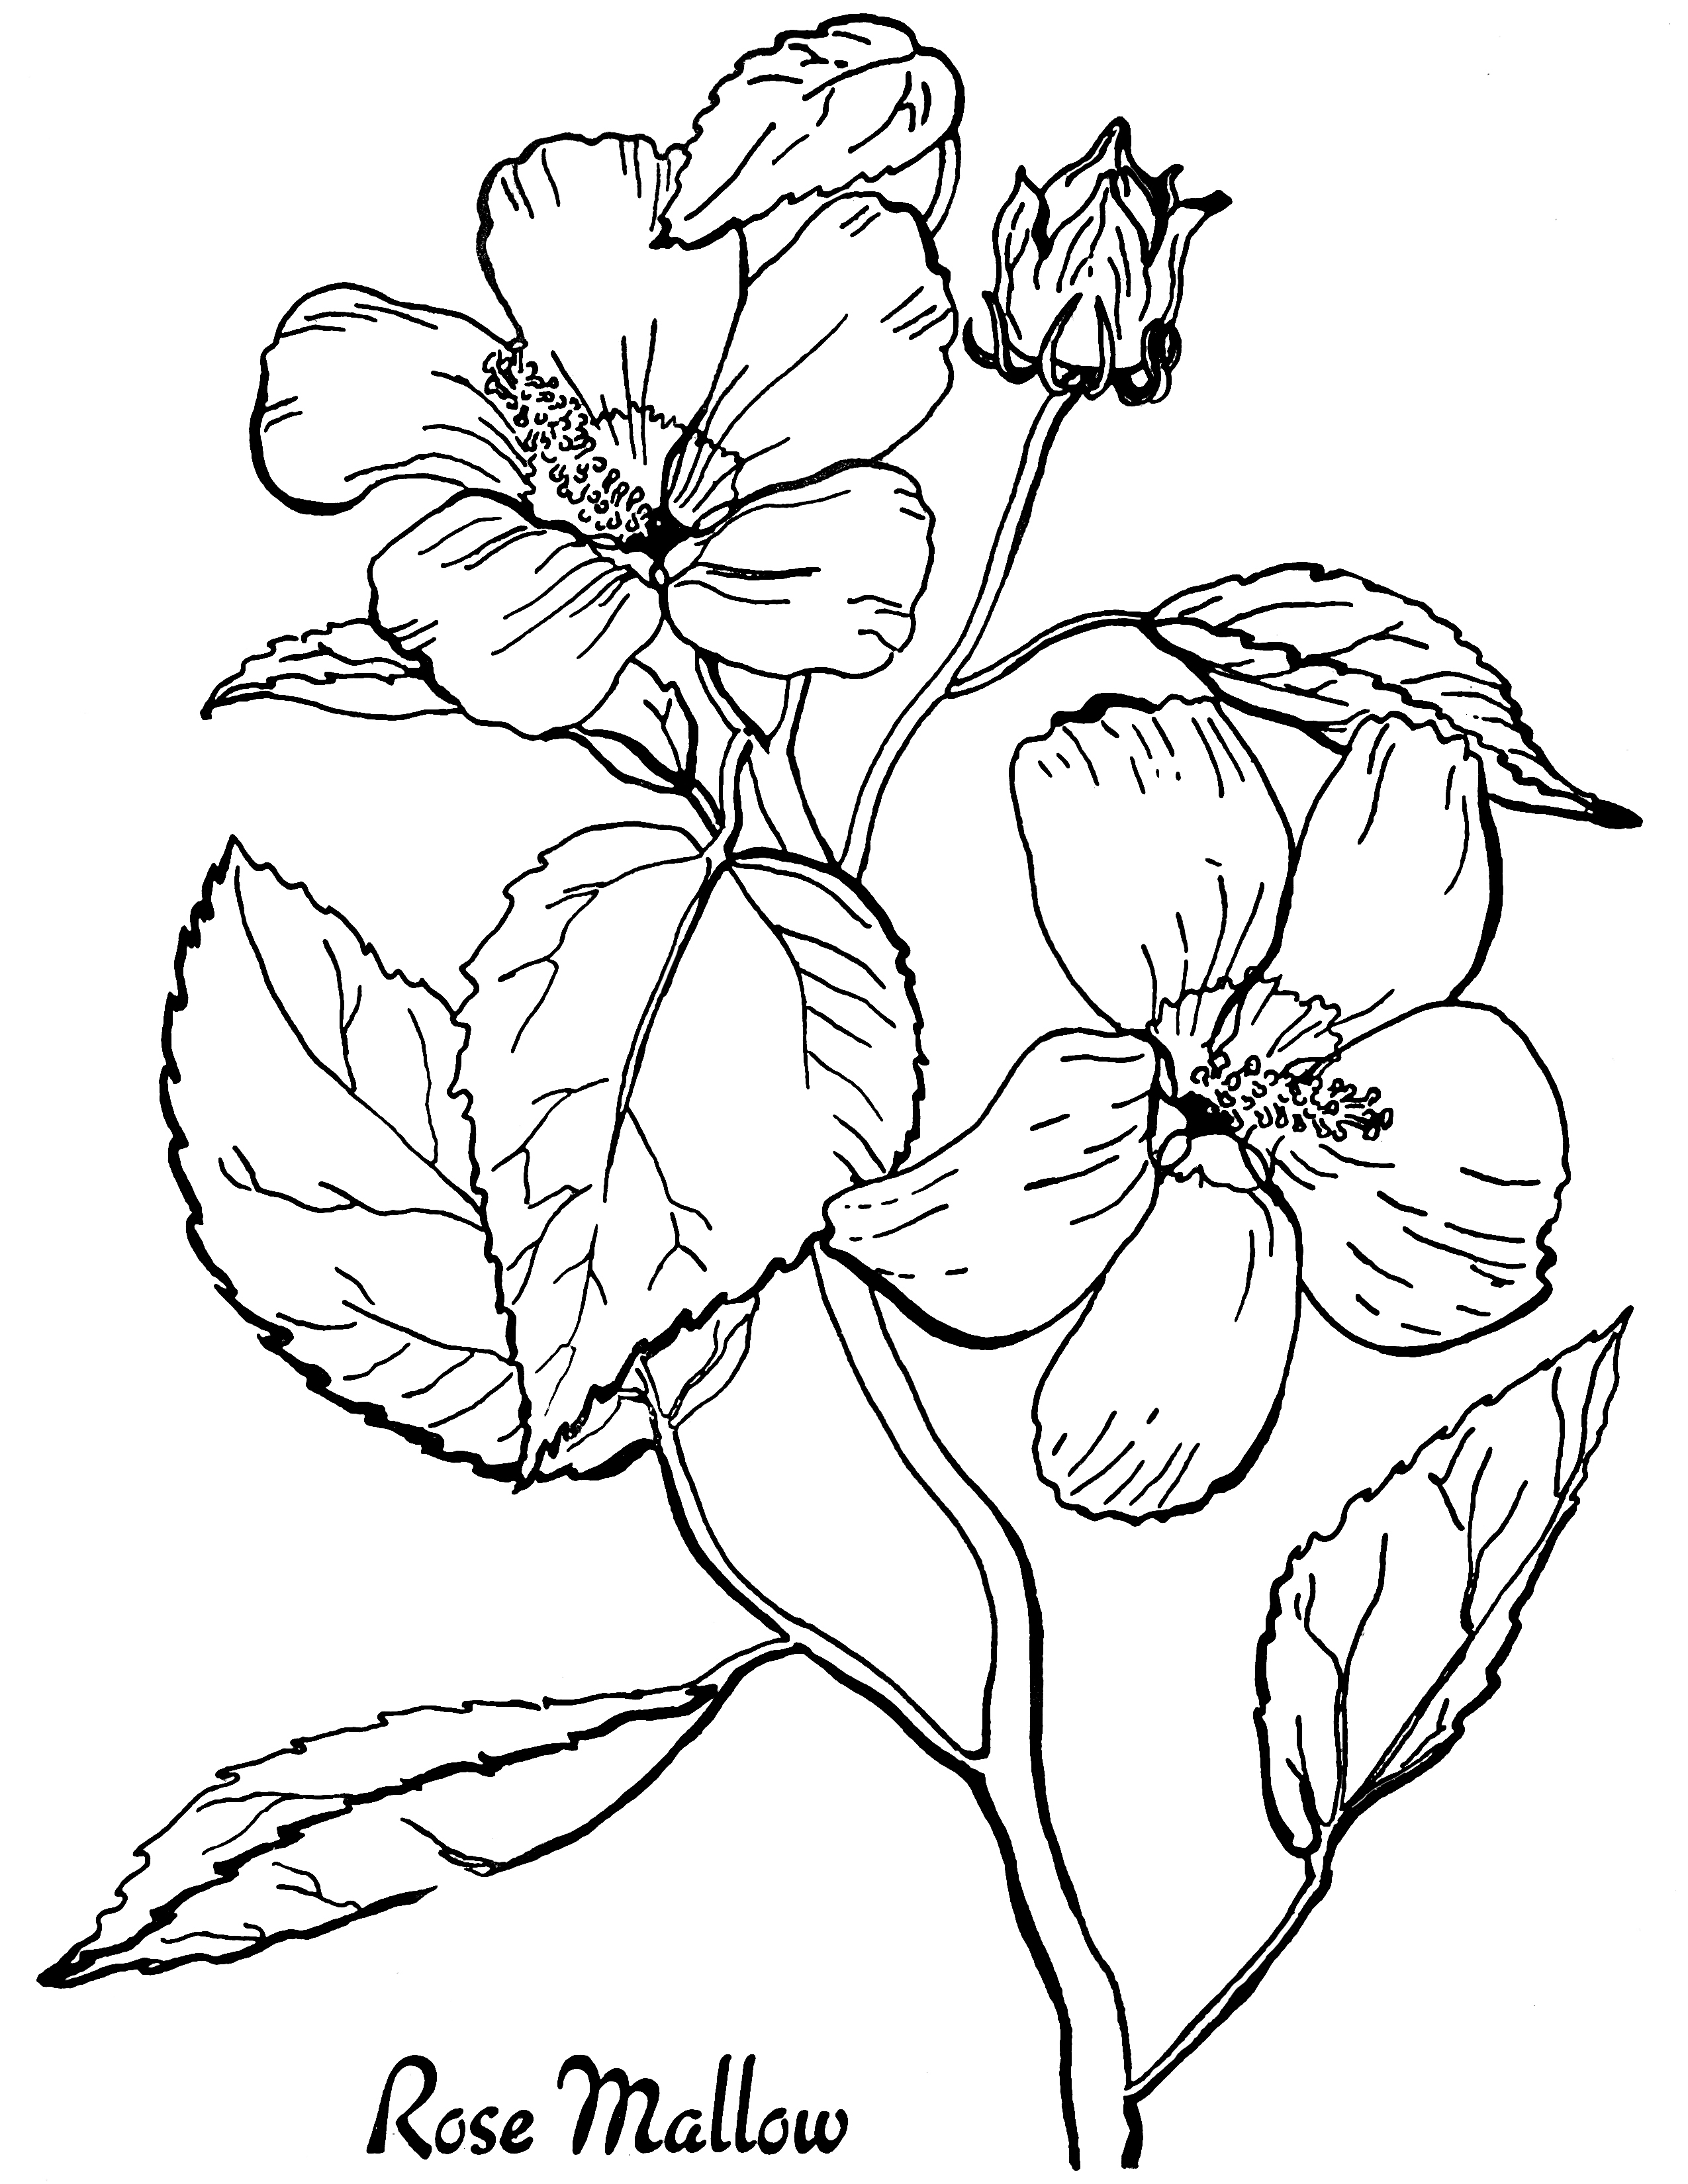 free flower coloring pages for adults flower coloring pages for adults best coloring pages for for free adults coloring pages flower